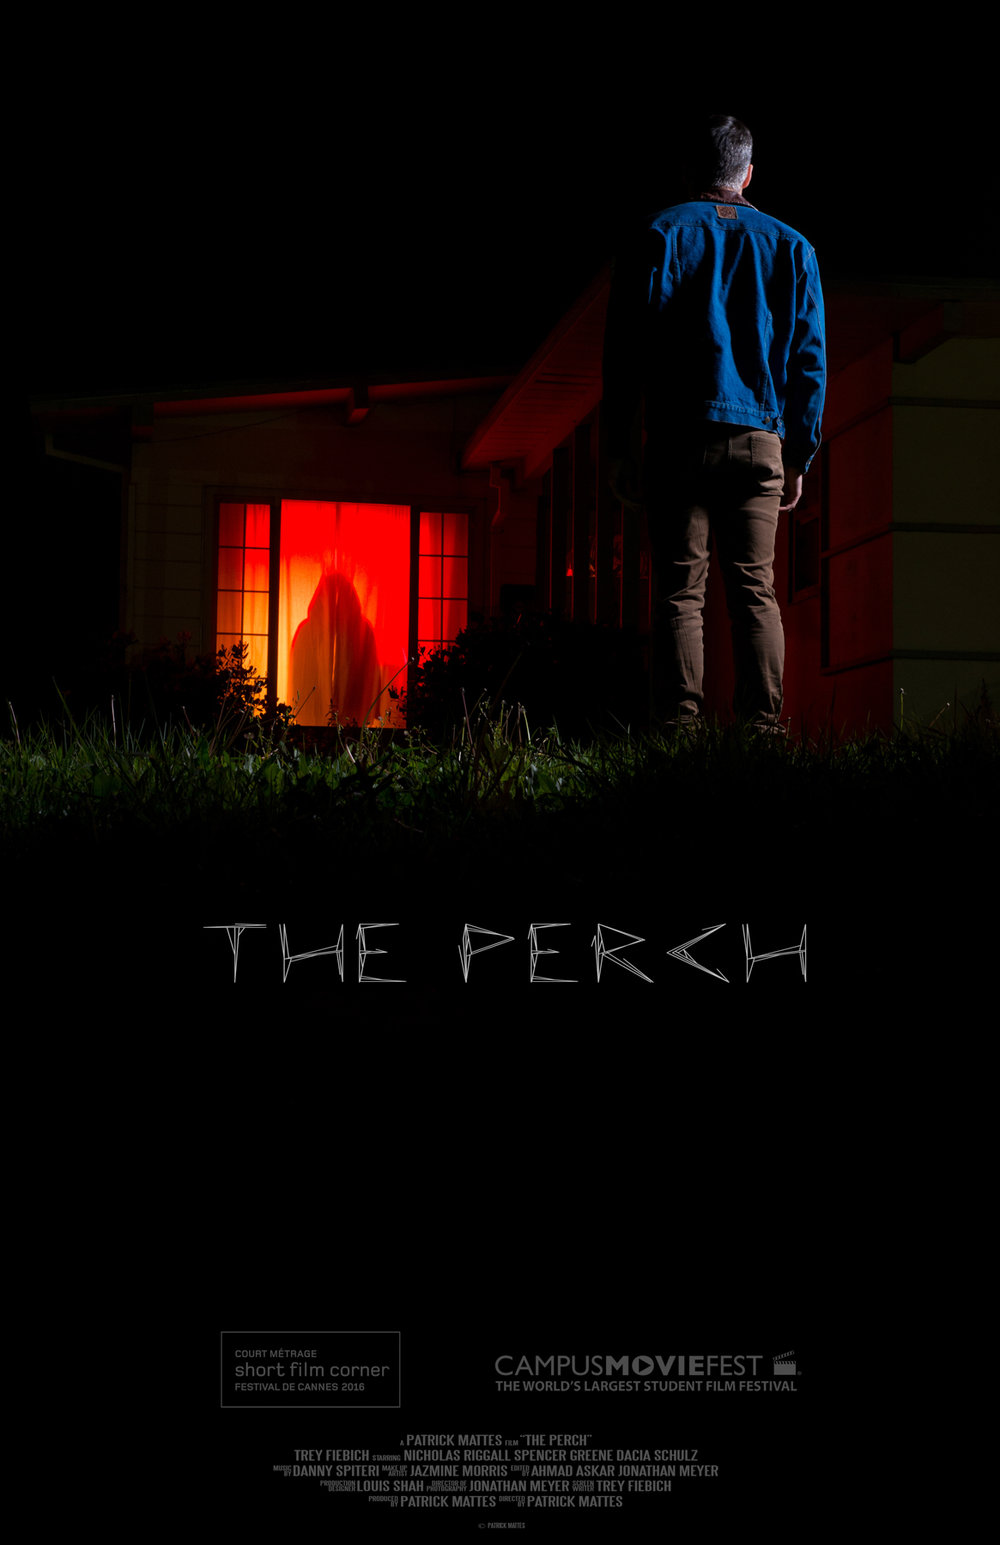 the-perch-poster-1117.jpg